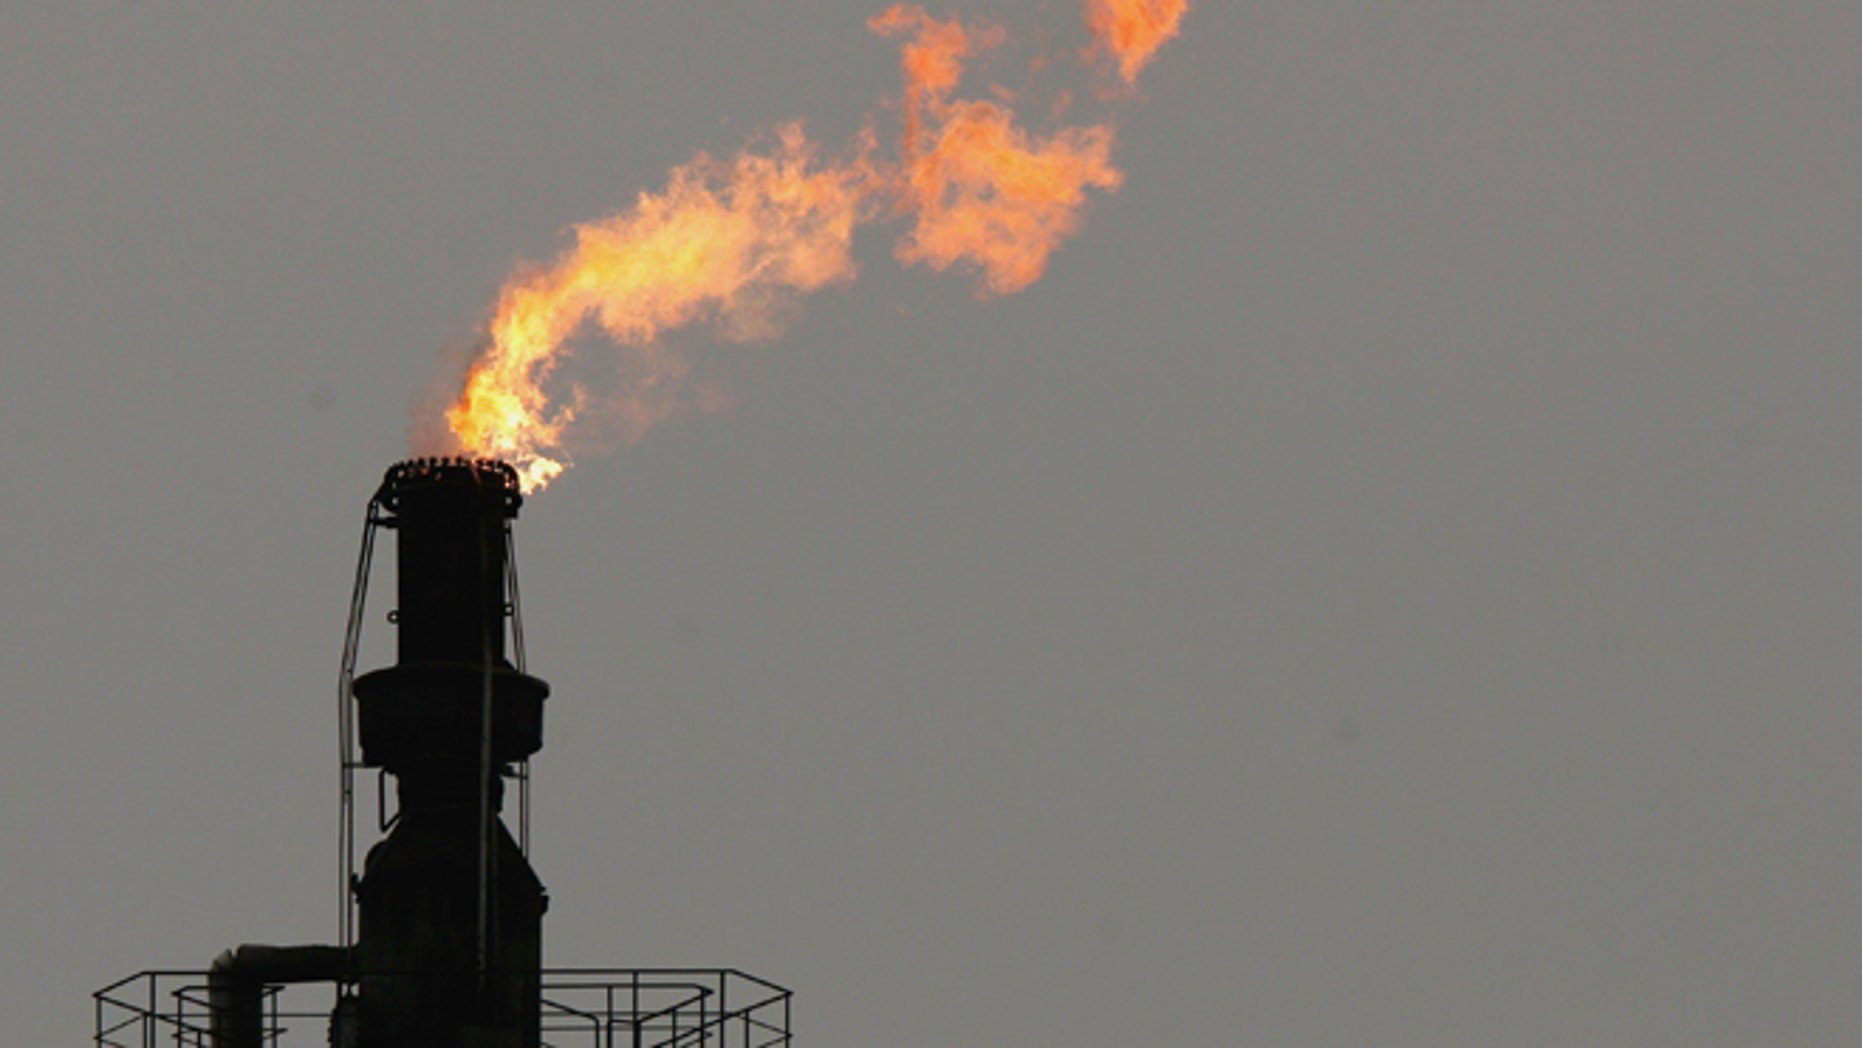 """SCHWEDT, GERMANY - JANUARY 09:  An exhaust flame burns at the PCK crude oil refinery January 9, 2007 near the Polish border in Schwedt, Germany. Crude oil from Russia has stopped flowing to the PCK refinery since 6:00 AM January 8 due to a row between Russia and Belarus over how much Belarus should pay for Russian oil. Initial reports claimed Belarus had turned off the flow of crude oil through the """"Druzhba"""" pipeline as a means to negotiate a better price. German oil reserves are still substantial, though Chancellor Angela Merkel announced her country must not depend too much on one source for its energy needs.  (Photo by Sean Gallup/Getty Images)"""